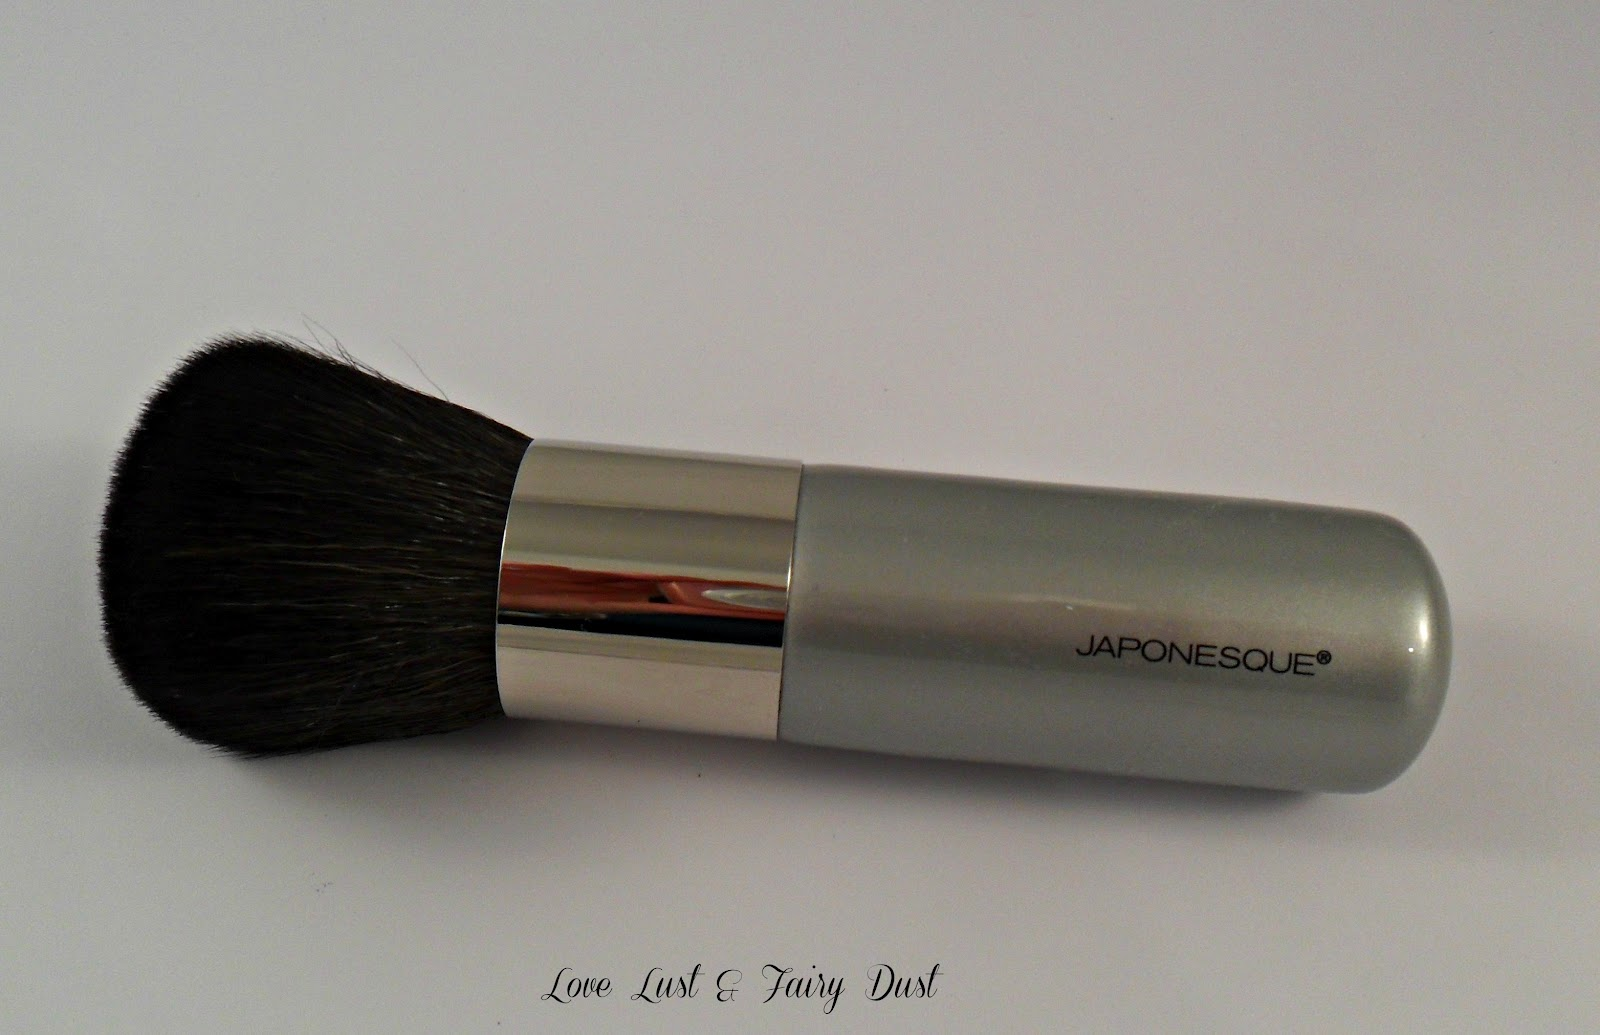 Japonesque Complexion Perfection Travel Lux Bronzer Kabuki Brush